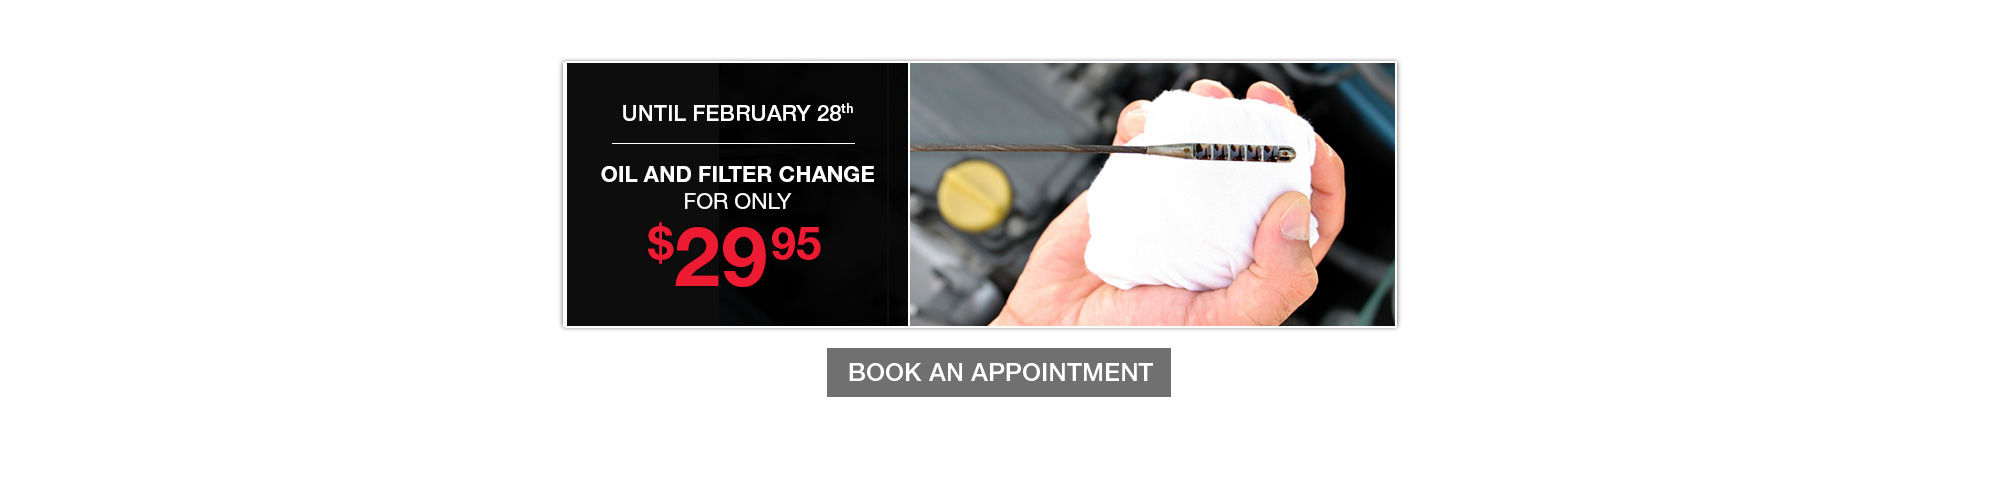 Oil and Filter Change Promotion